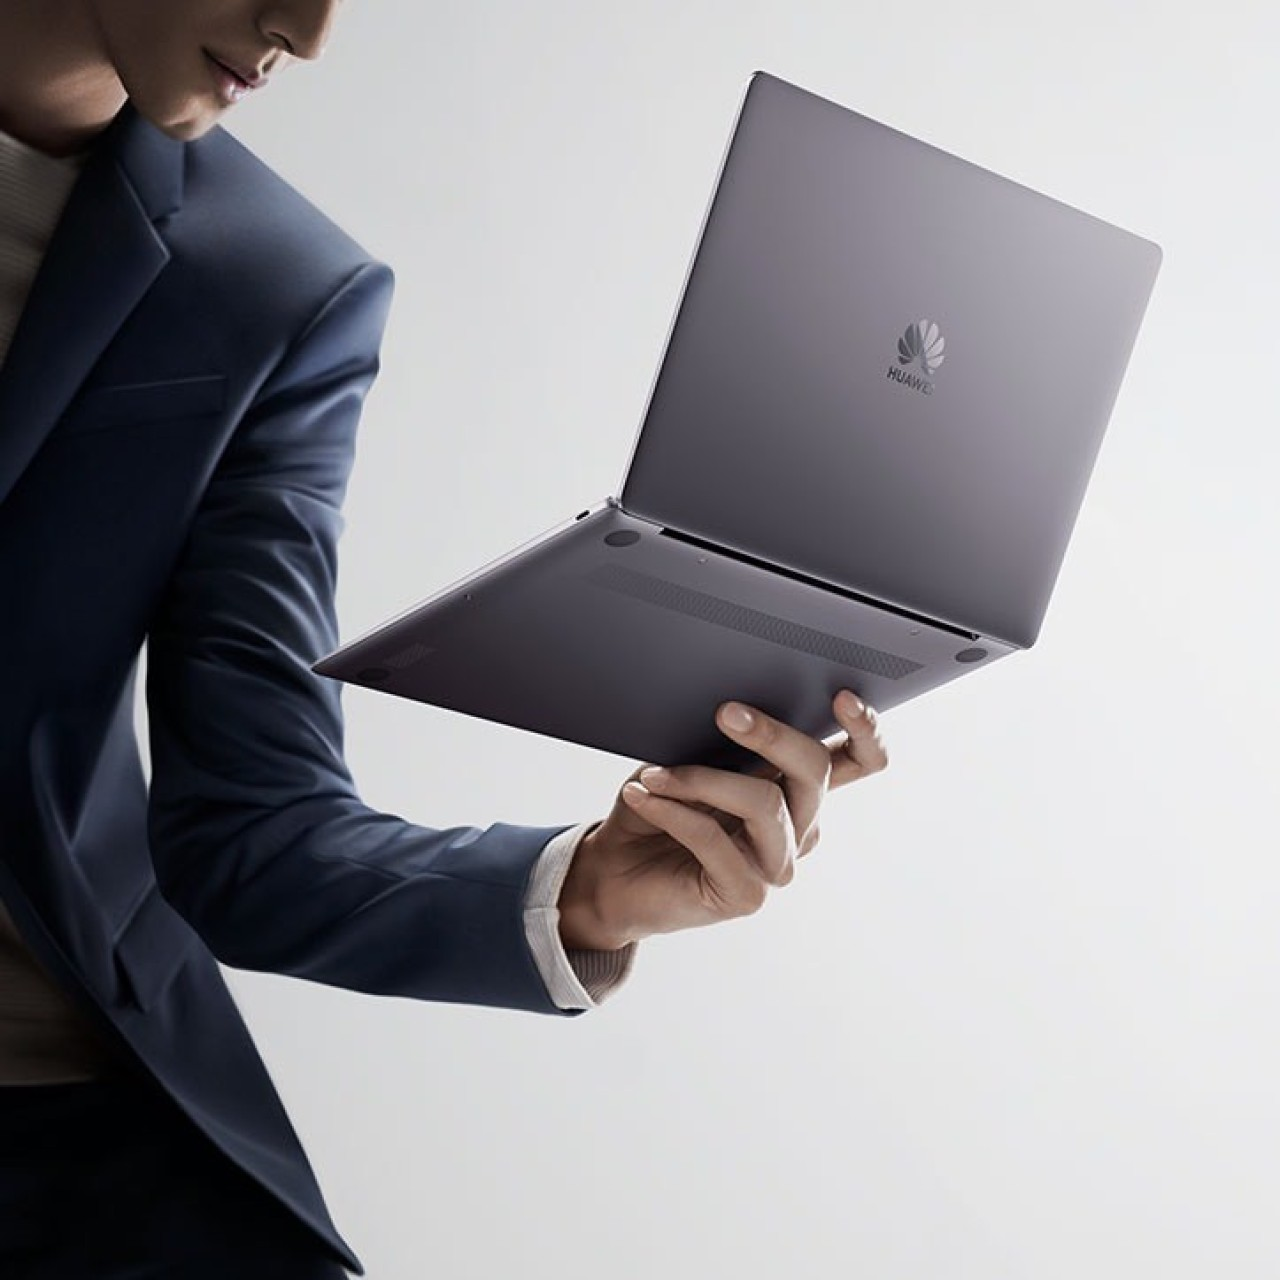 cfe04ee3db7e Huawei launches new MateBook 13 laptop for US market as it struggles ...